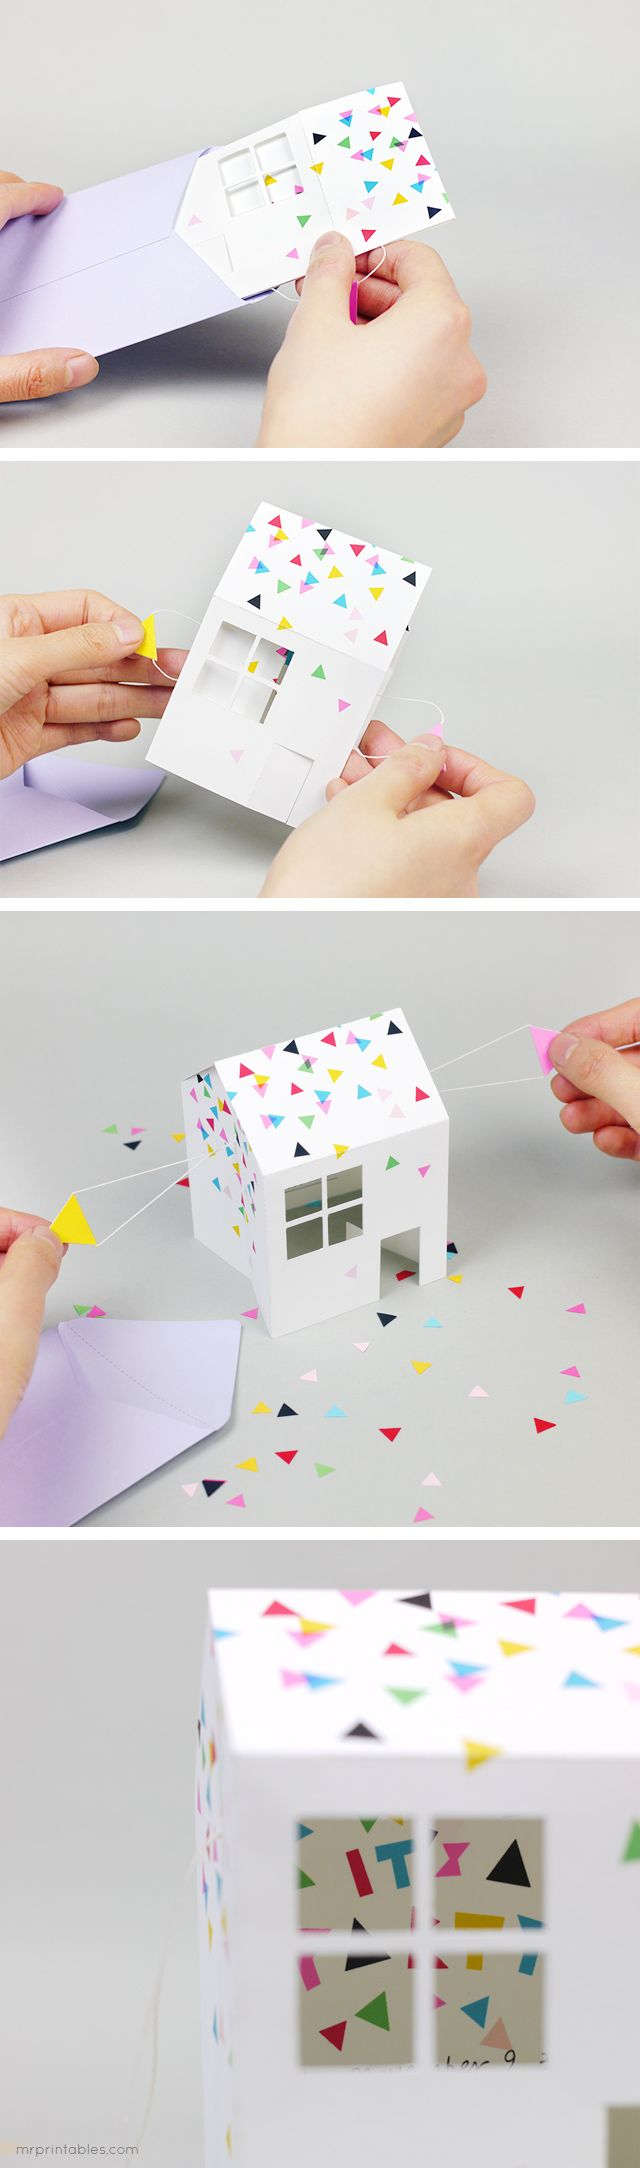 vitamini handmade: Pop-Up House Party Invitation.